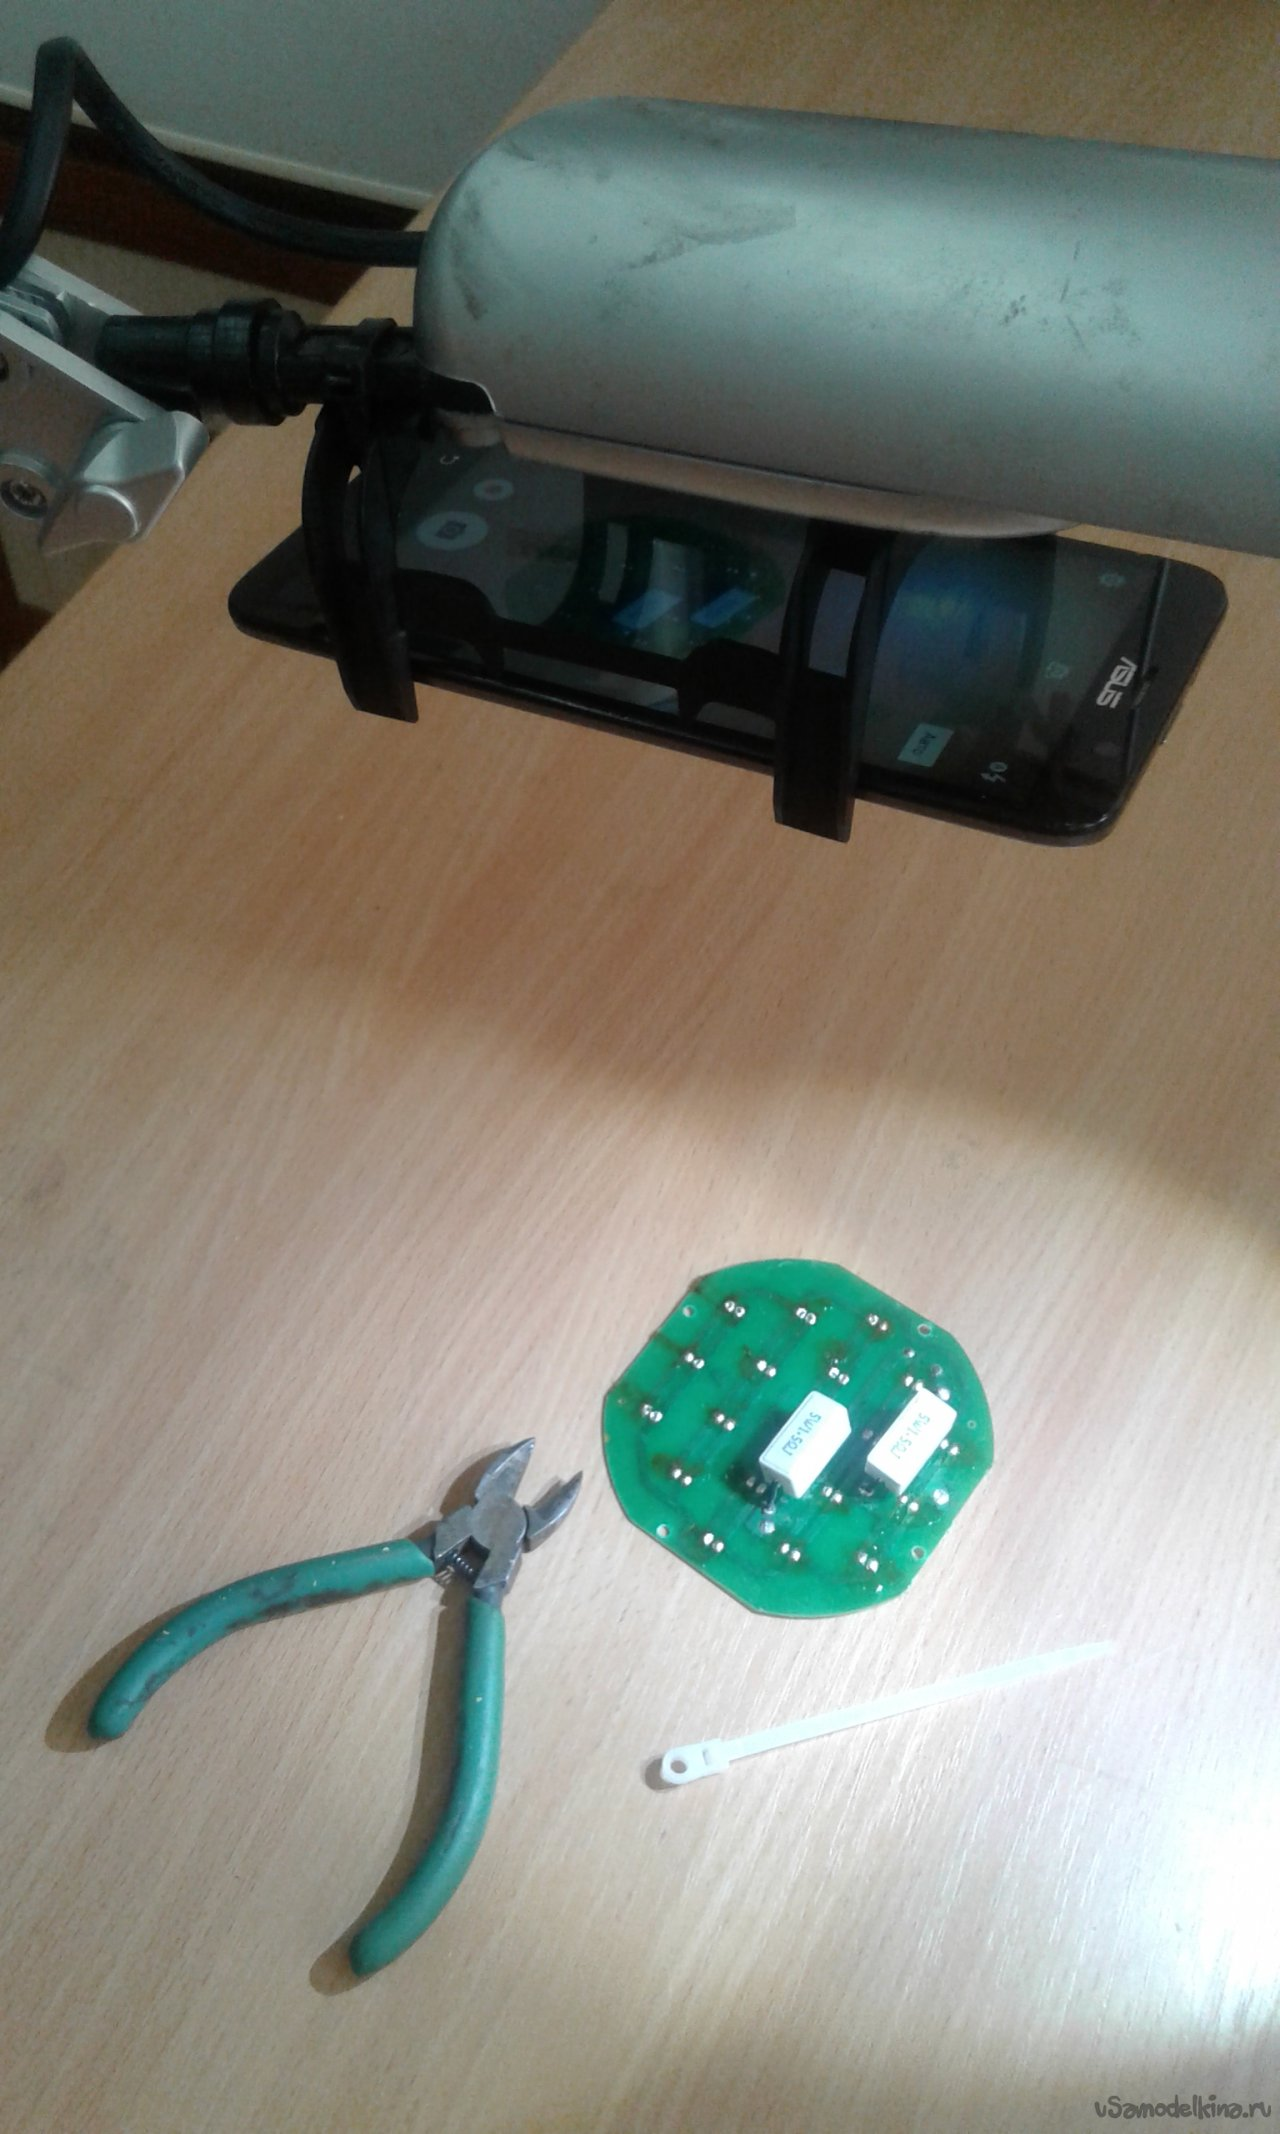 A simple tripod for shooting from a smartphone from a table lamp and mounting a radiator from socket 478